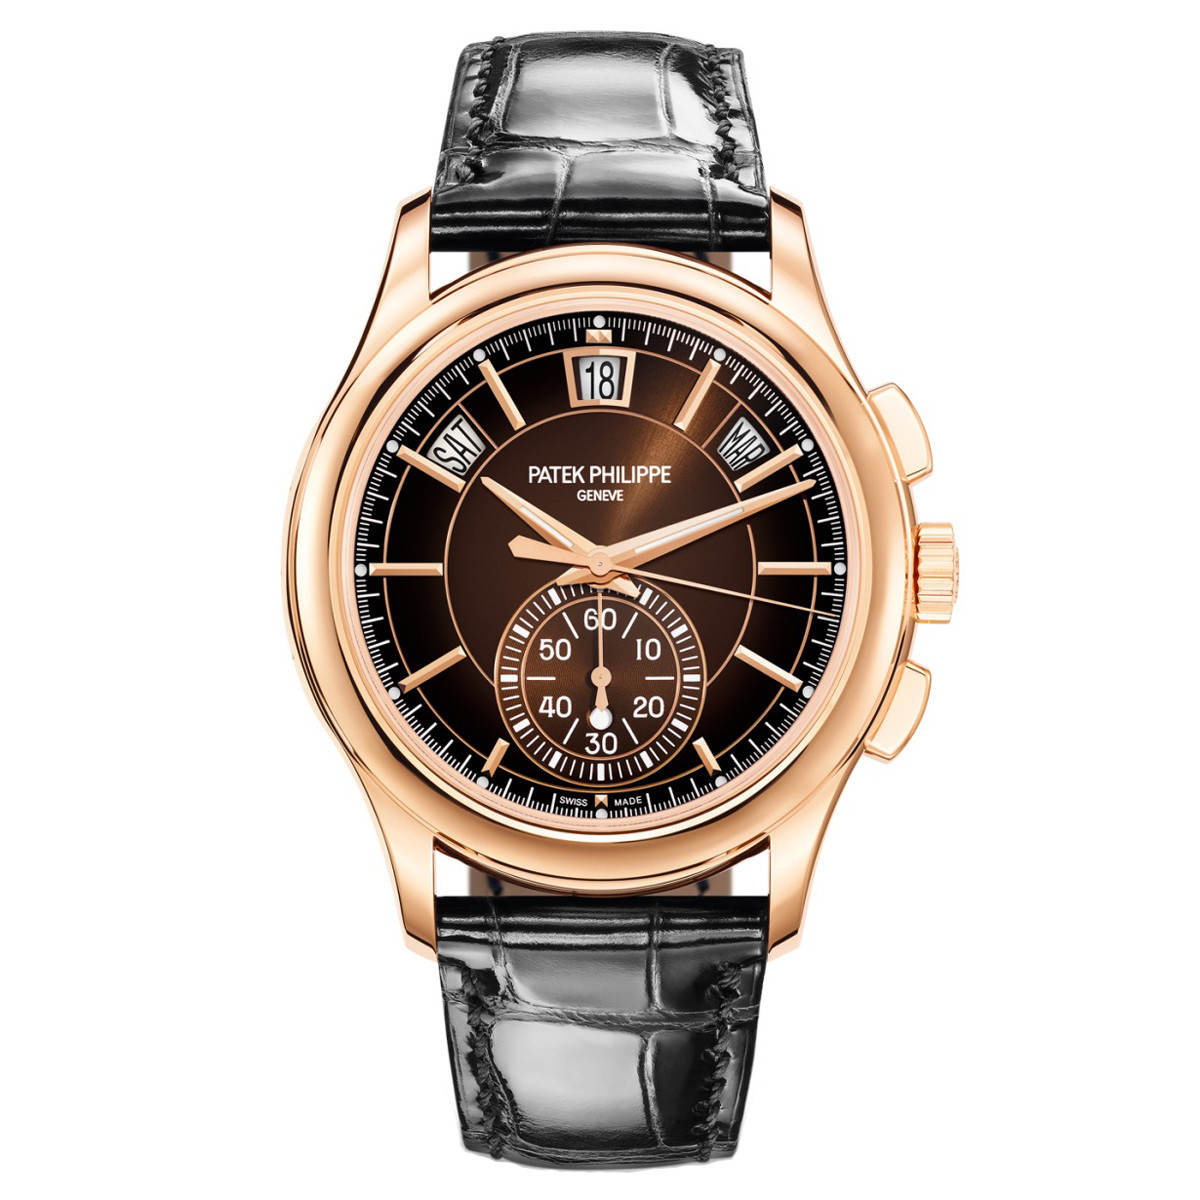 Annual Calendar Chronograph Rose Gold (5905R-001)